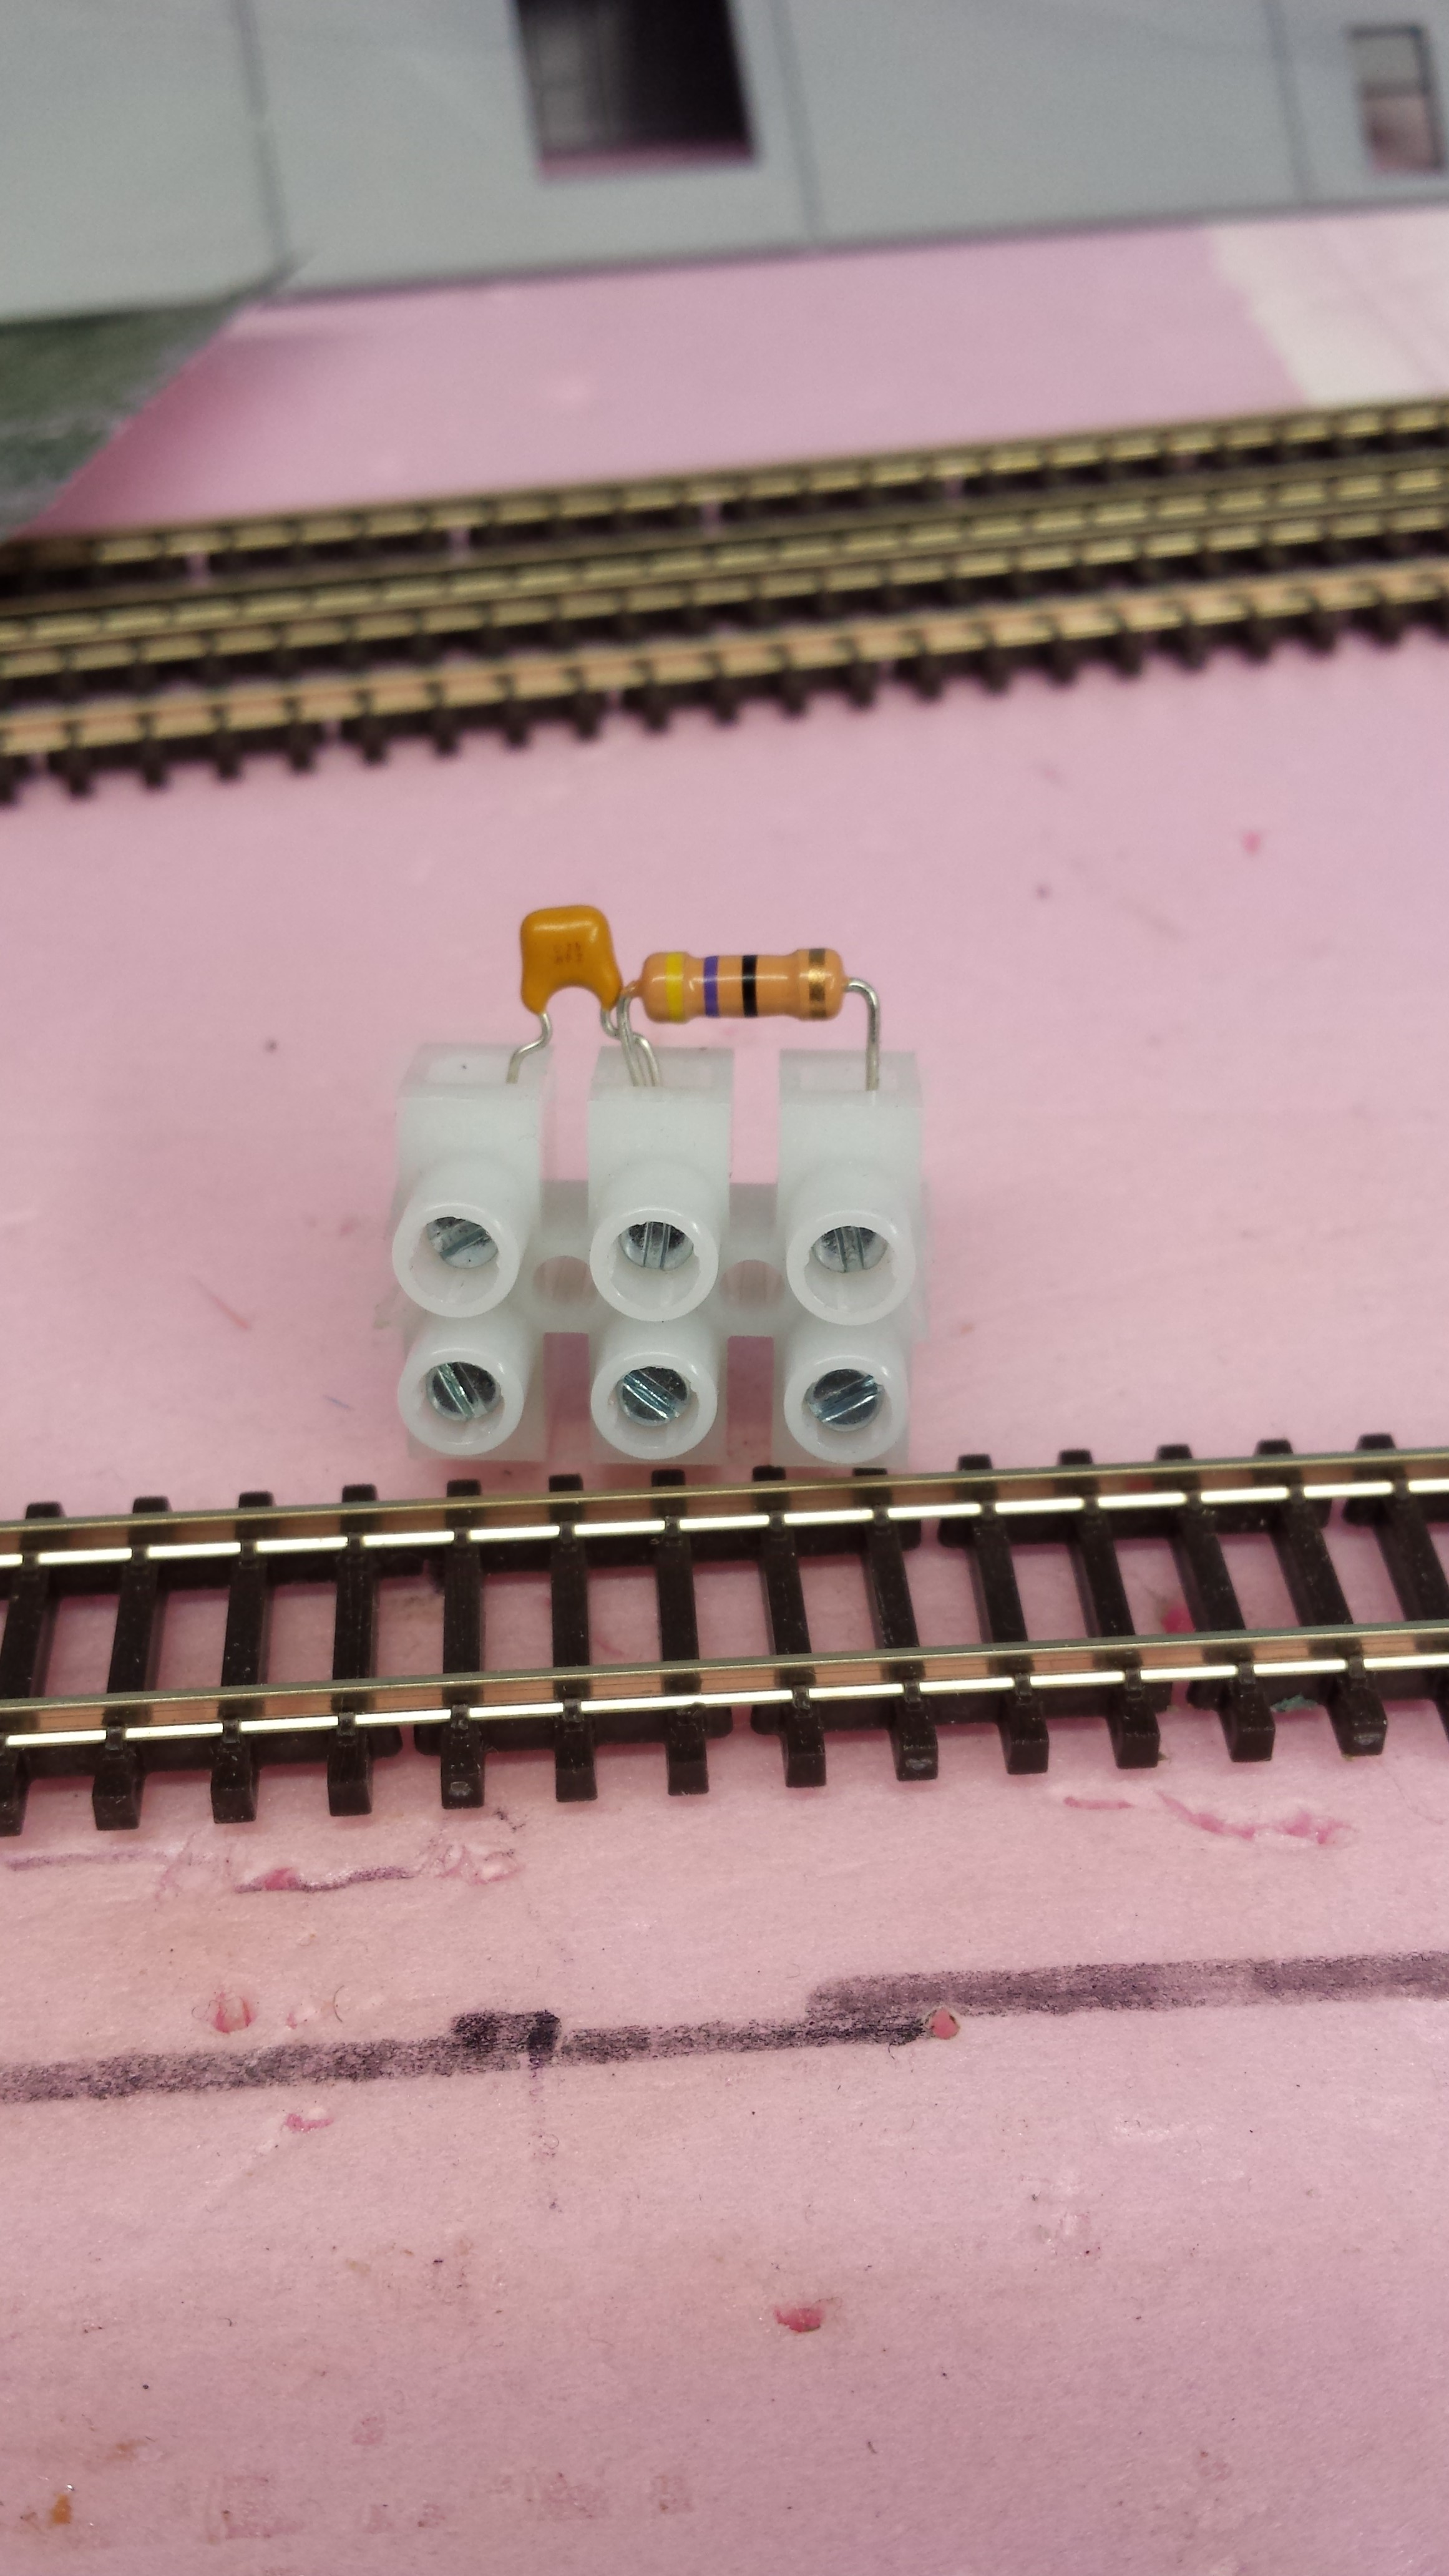 Snubber Rc Filter Welcome To The Nce Information Station Model Railroad Dcc Wiring How Build A Train Layouts G Z S 5240305 2 Pack Of Track Bus Noise Suppressor 1295